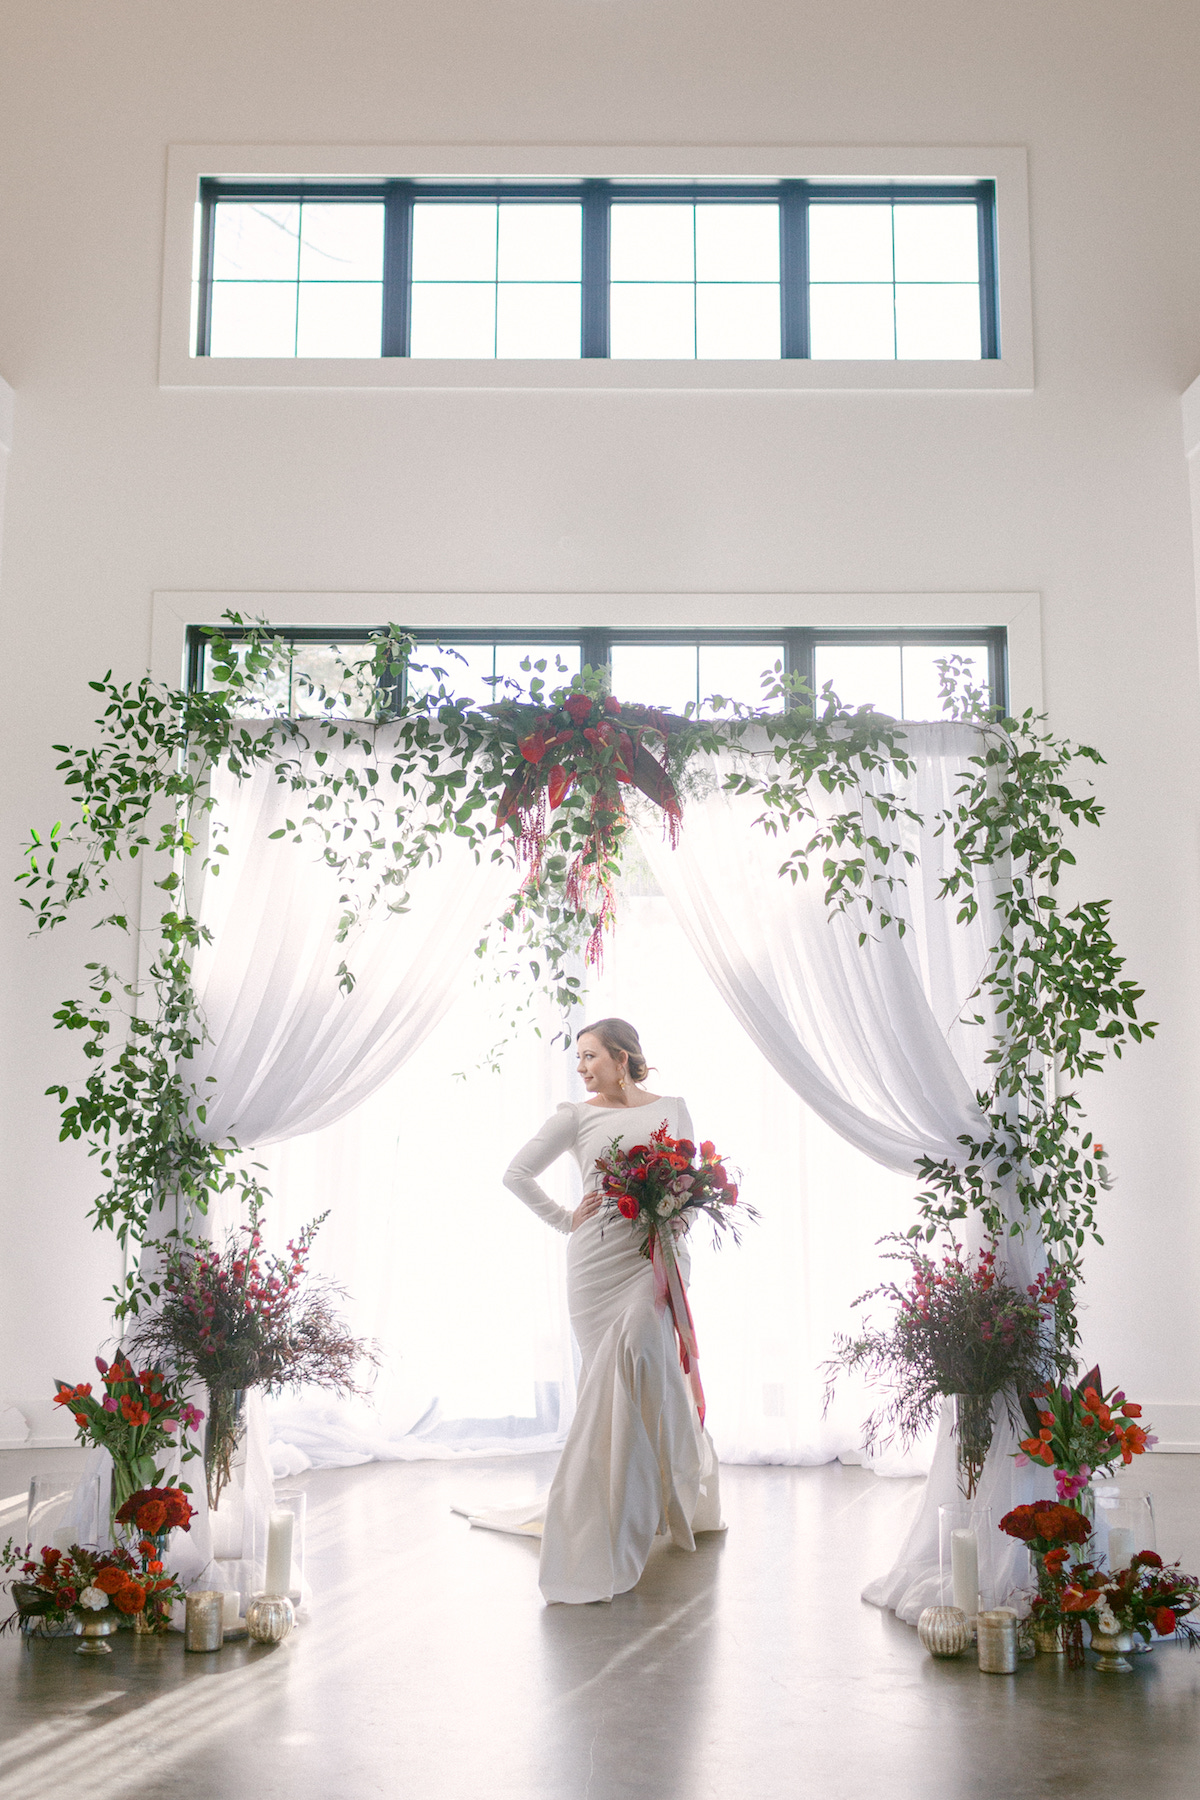 Red and green wedding ceremony arch - 5th Fine Art Photography